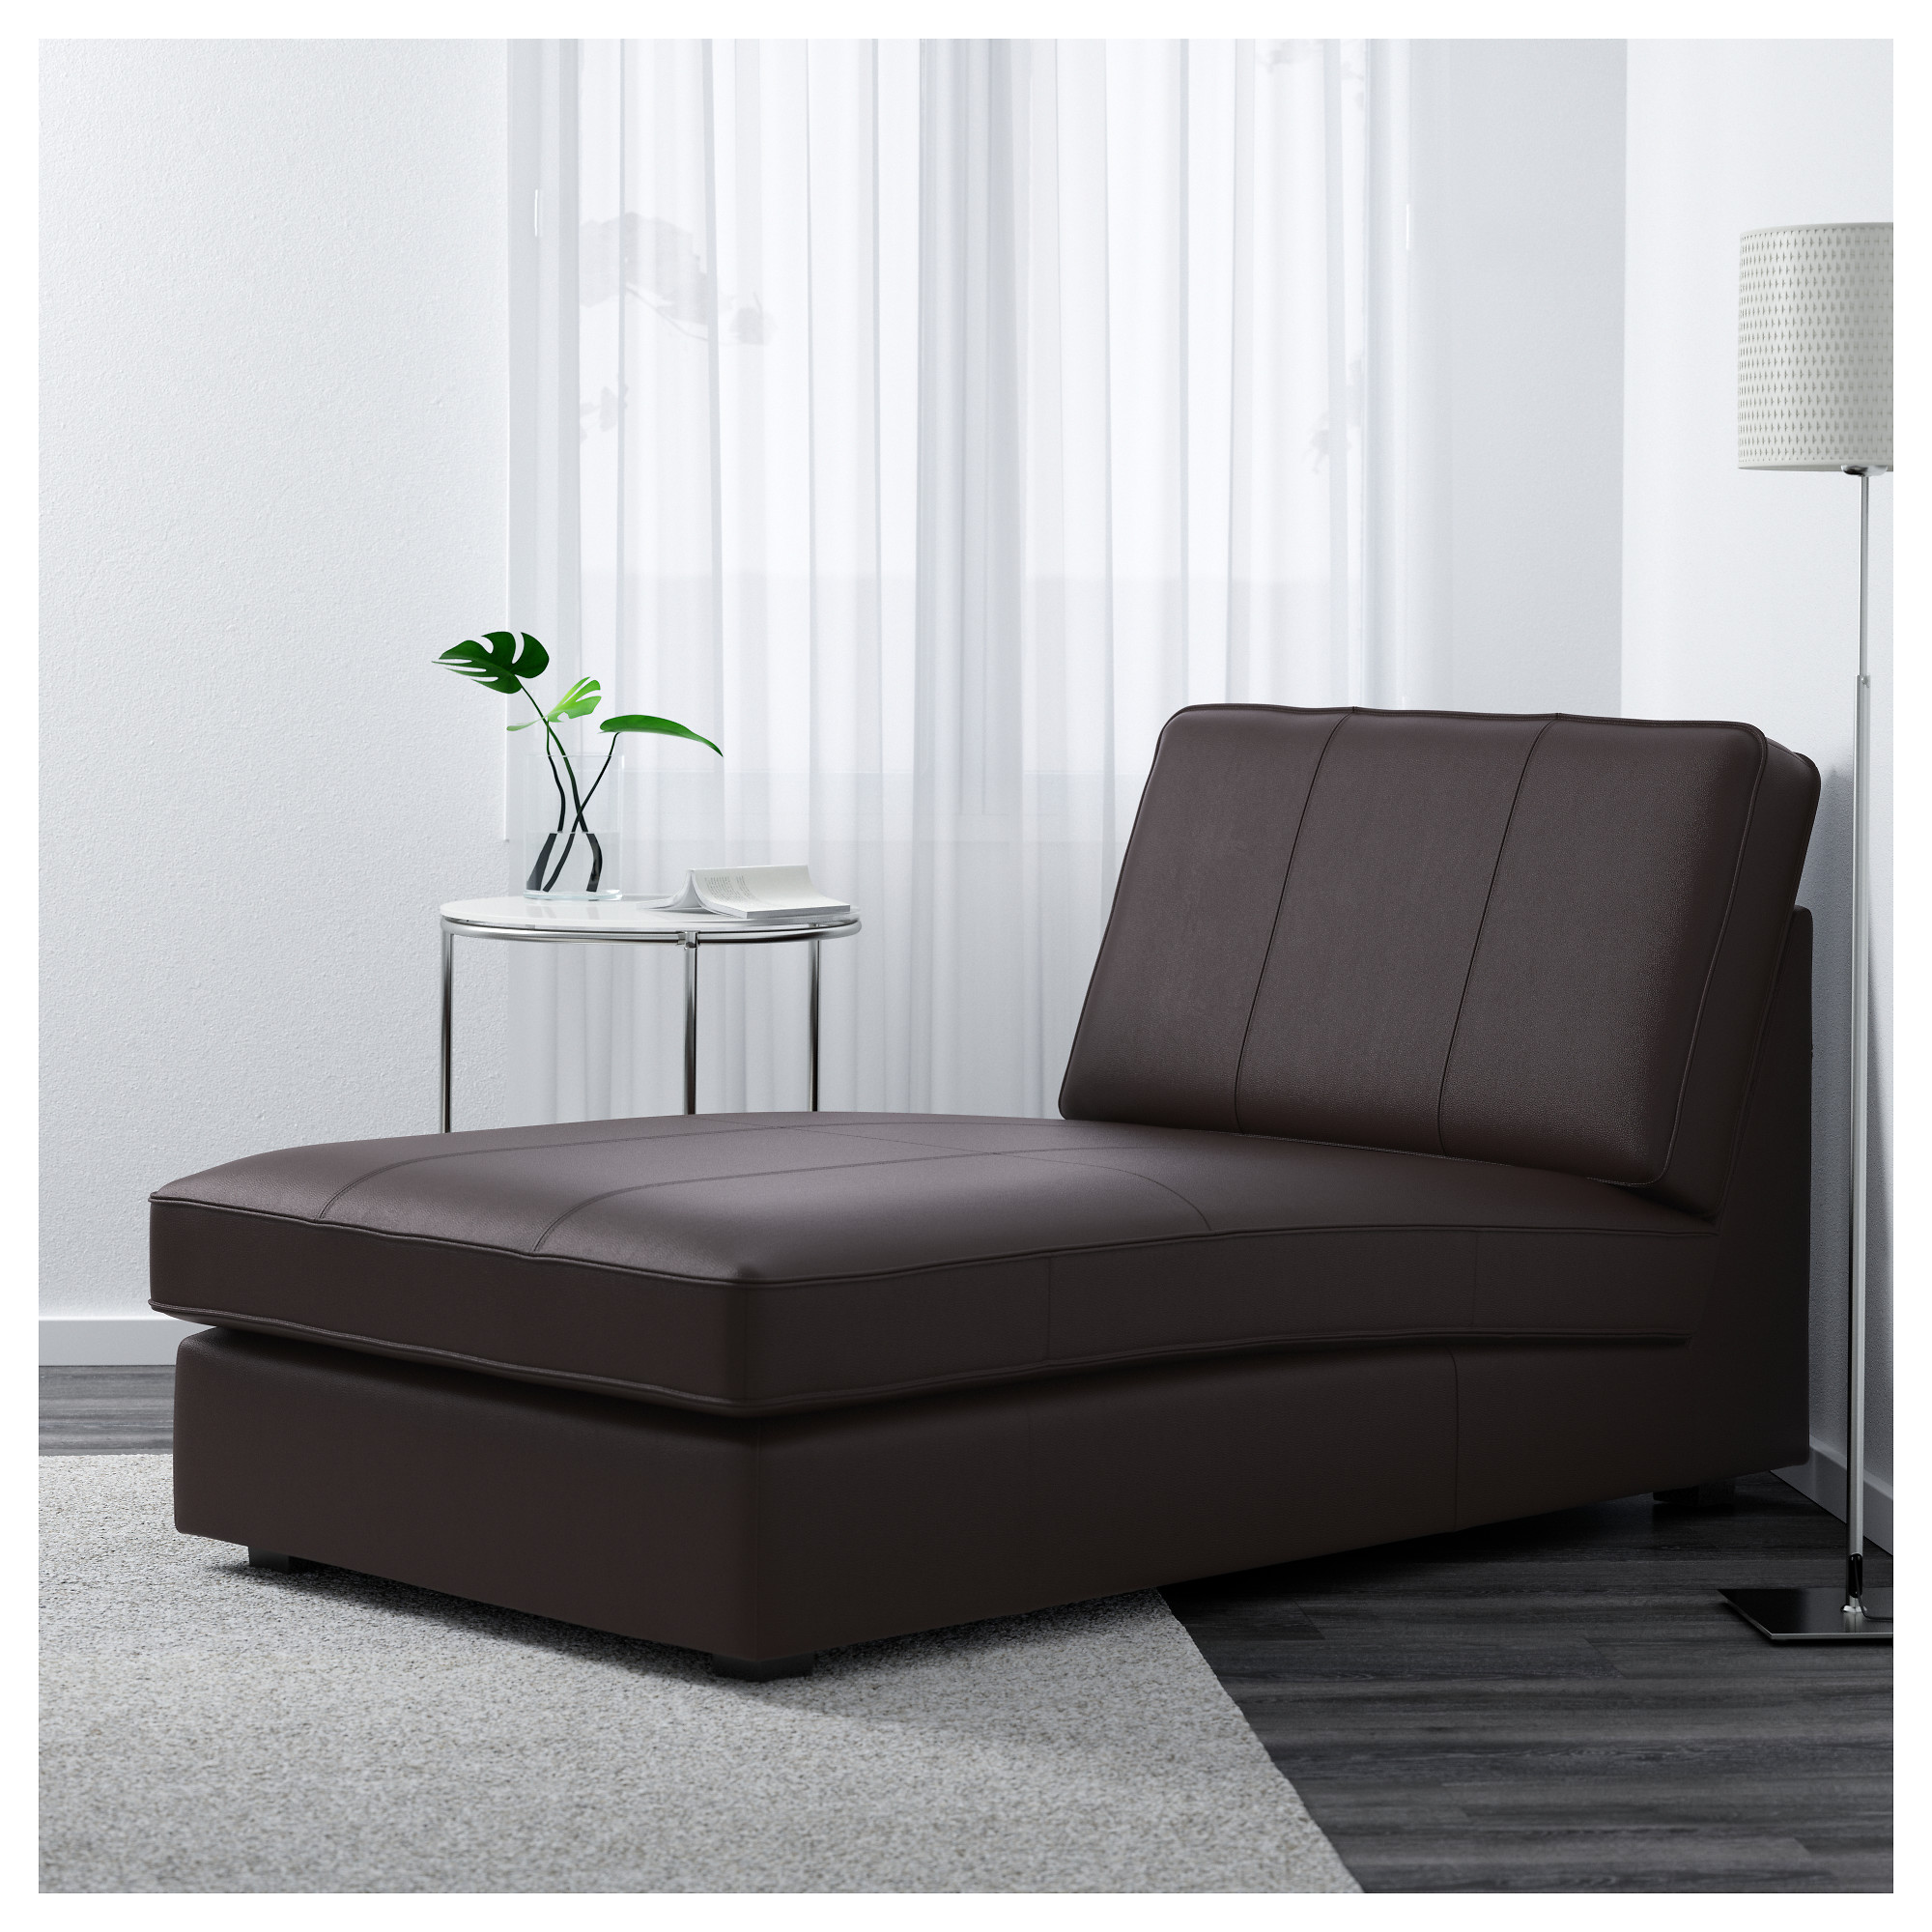 Sensational Kivik Chaise Longue Grann Bomstad Dark Brown Ikea Hong Kong Gmtry Best Dining Table And Chair Ideas Images Gmtryco